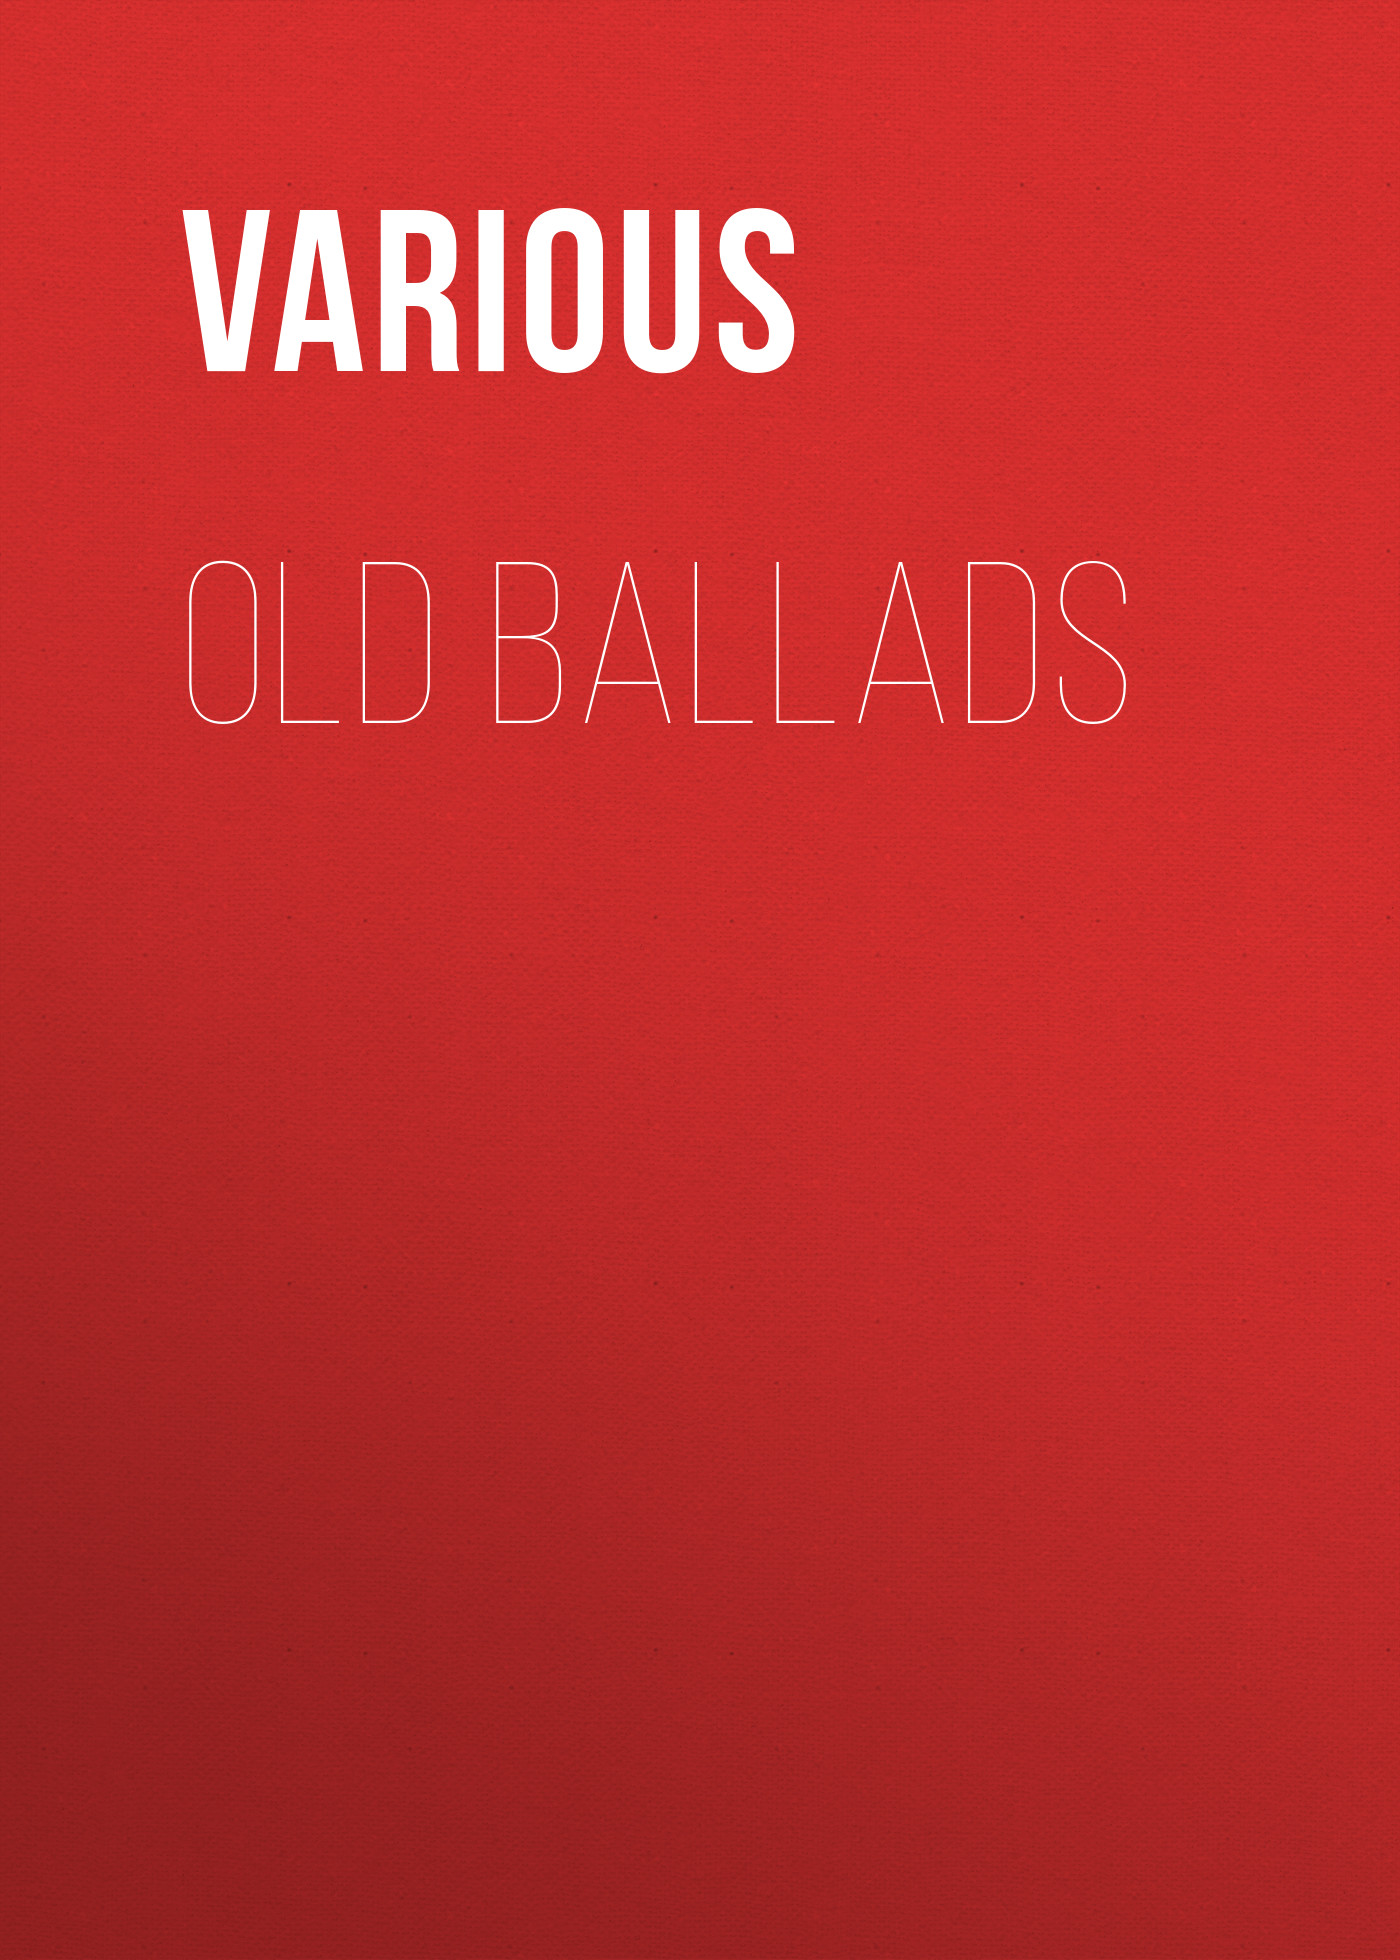 Various Old Ballads various ballads of beauty